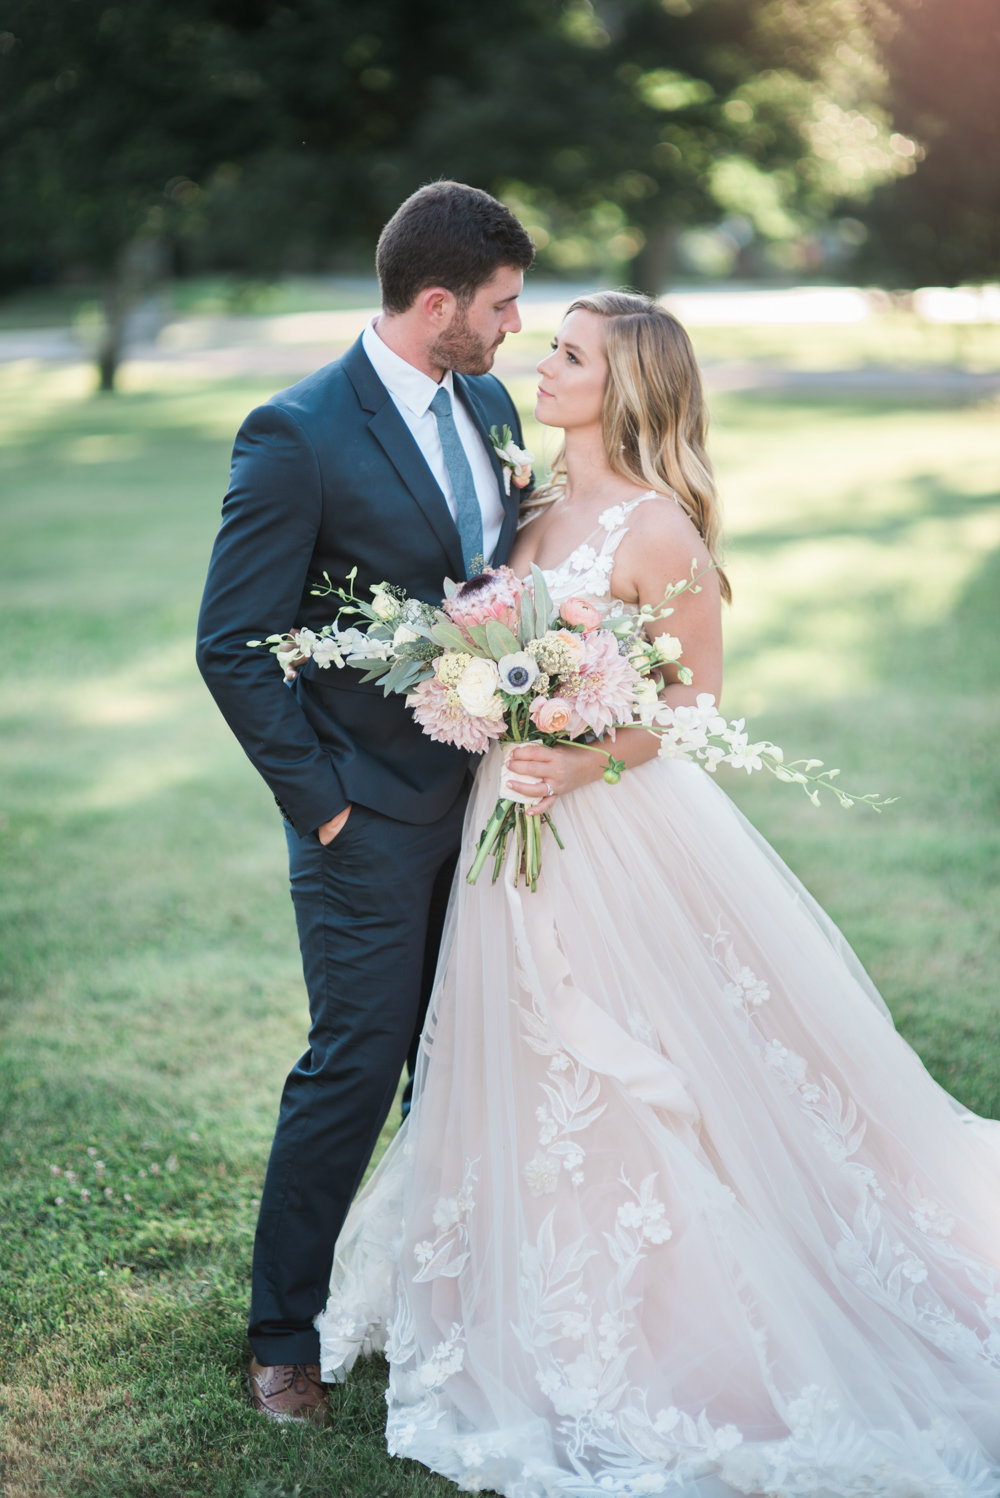 Inspirational Summer Elopement-Edits-0056.jpg